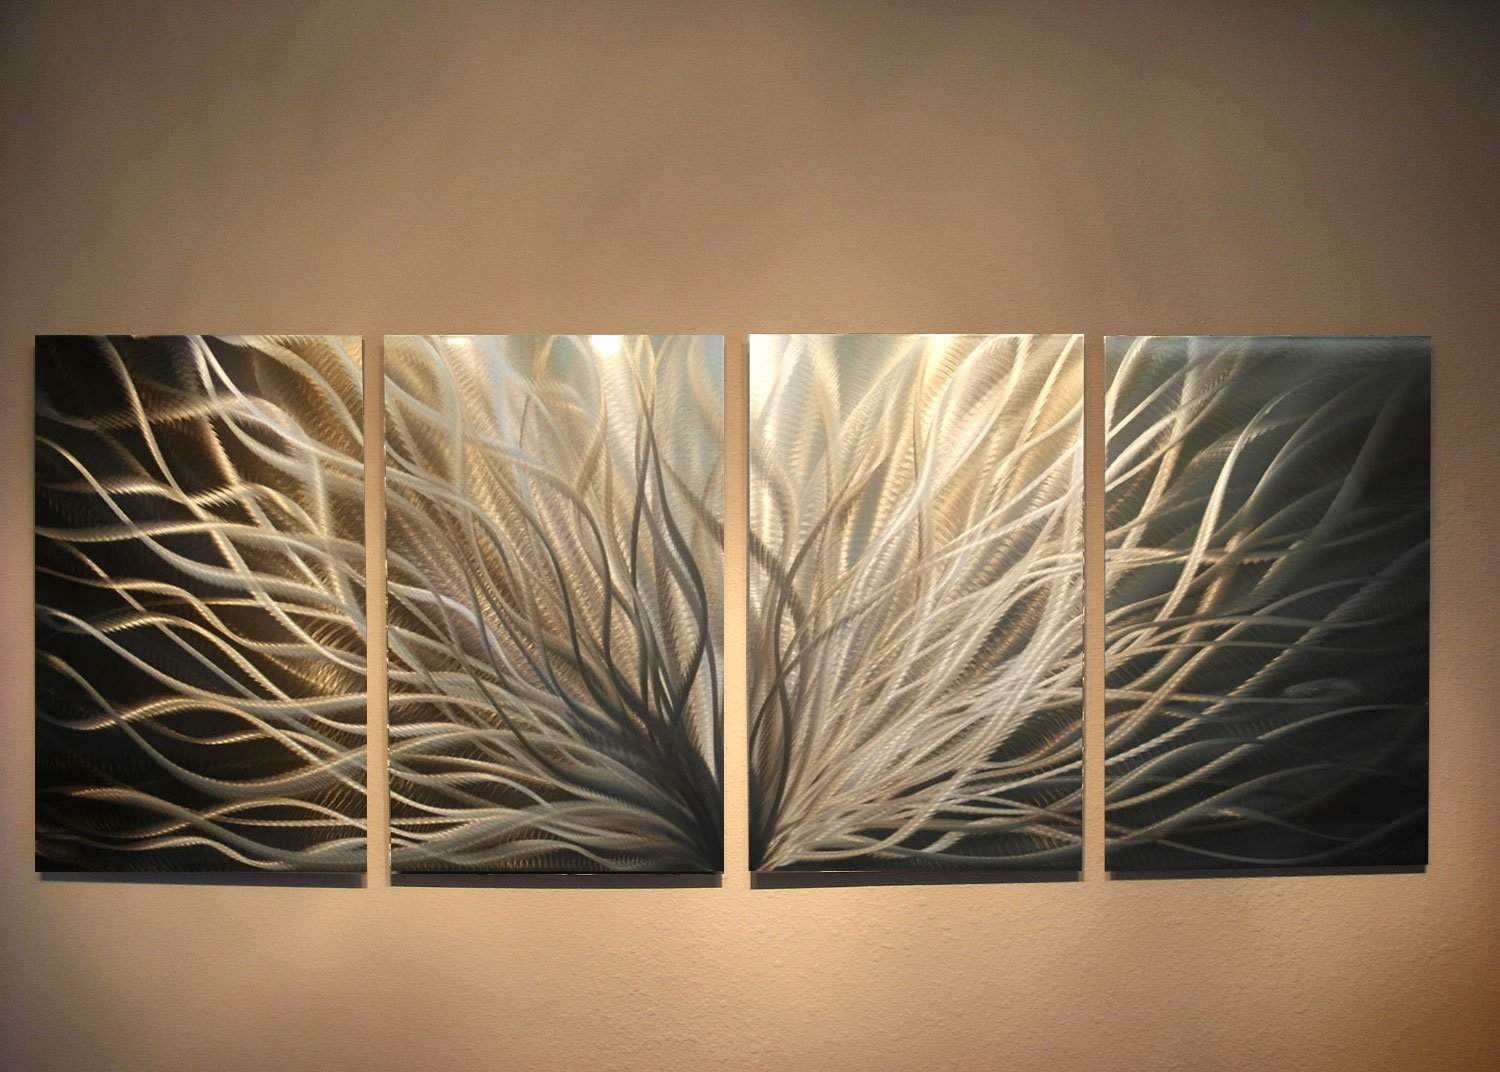 Metal Wall Art, Modern Home Decor, Abstract Sculpture Contemporary- Radiance Silver and Gold by Miles Shay by Miles Shay